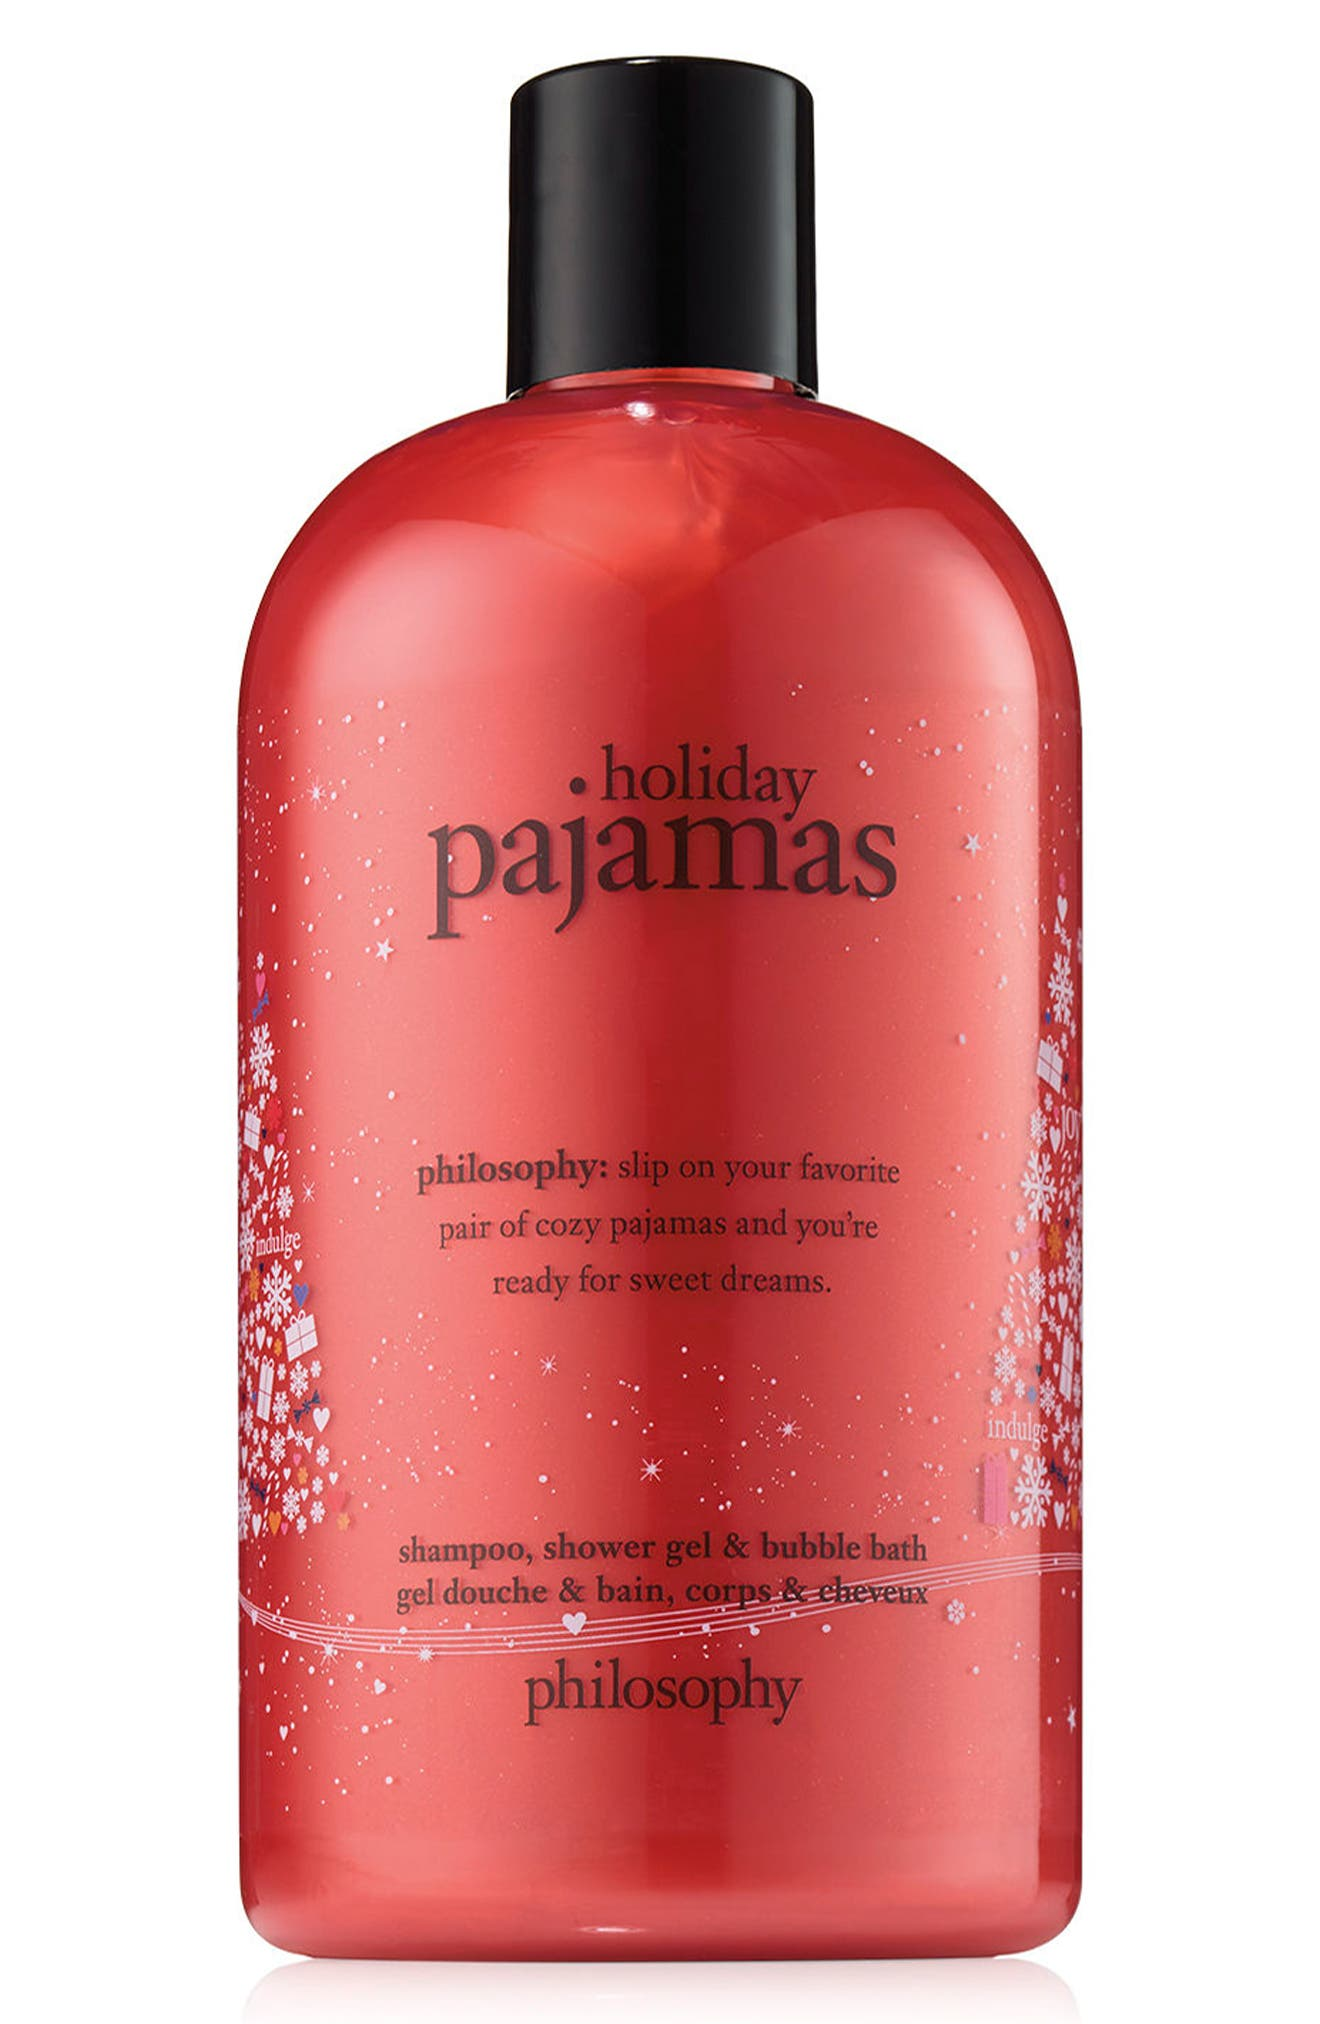 philosophy holiday pajamas shampoo, shower gel & bubble bath (Limited Edition)